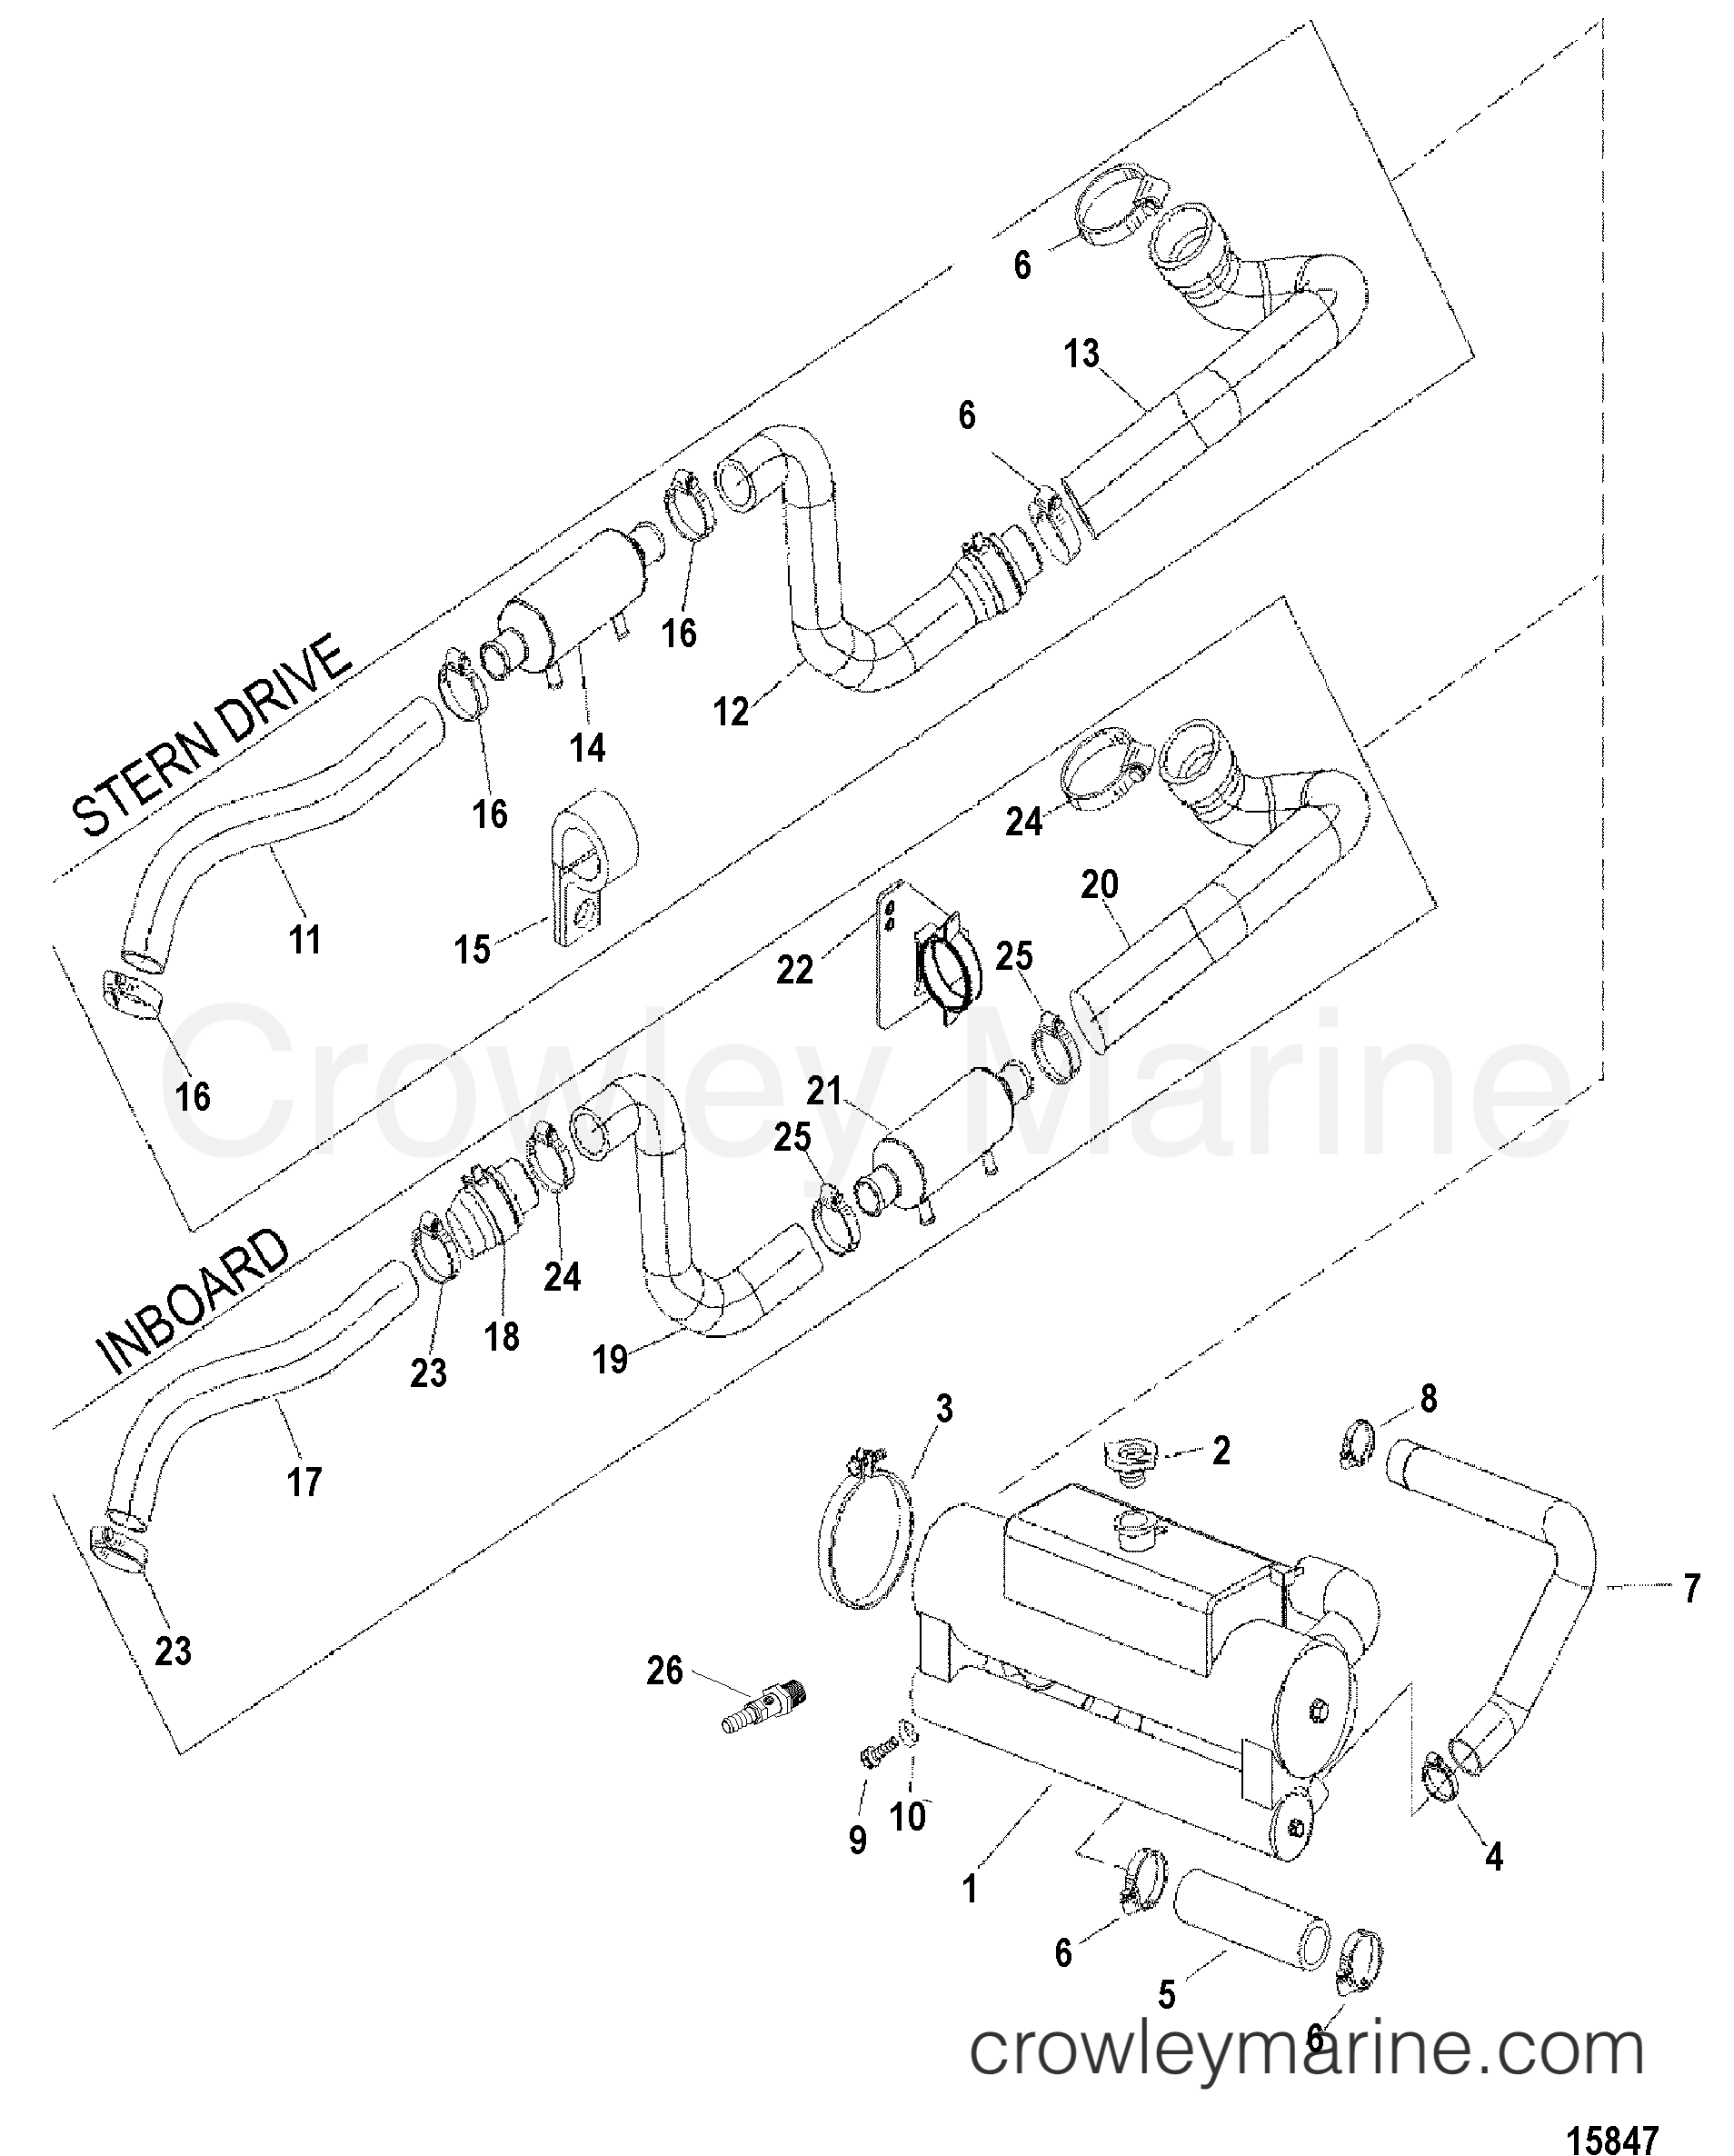 Bayliner Replacement Parts Wiring Diagrams Bayliner Trophy